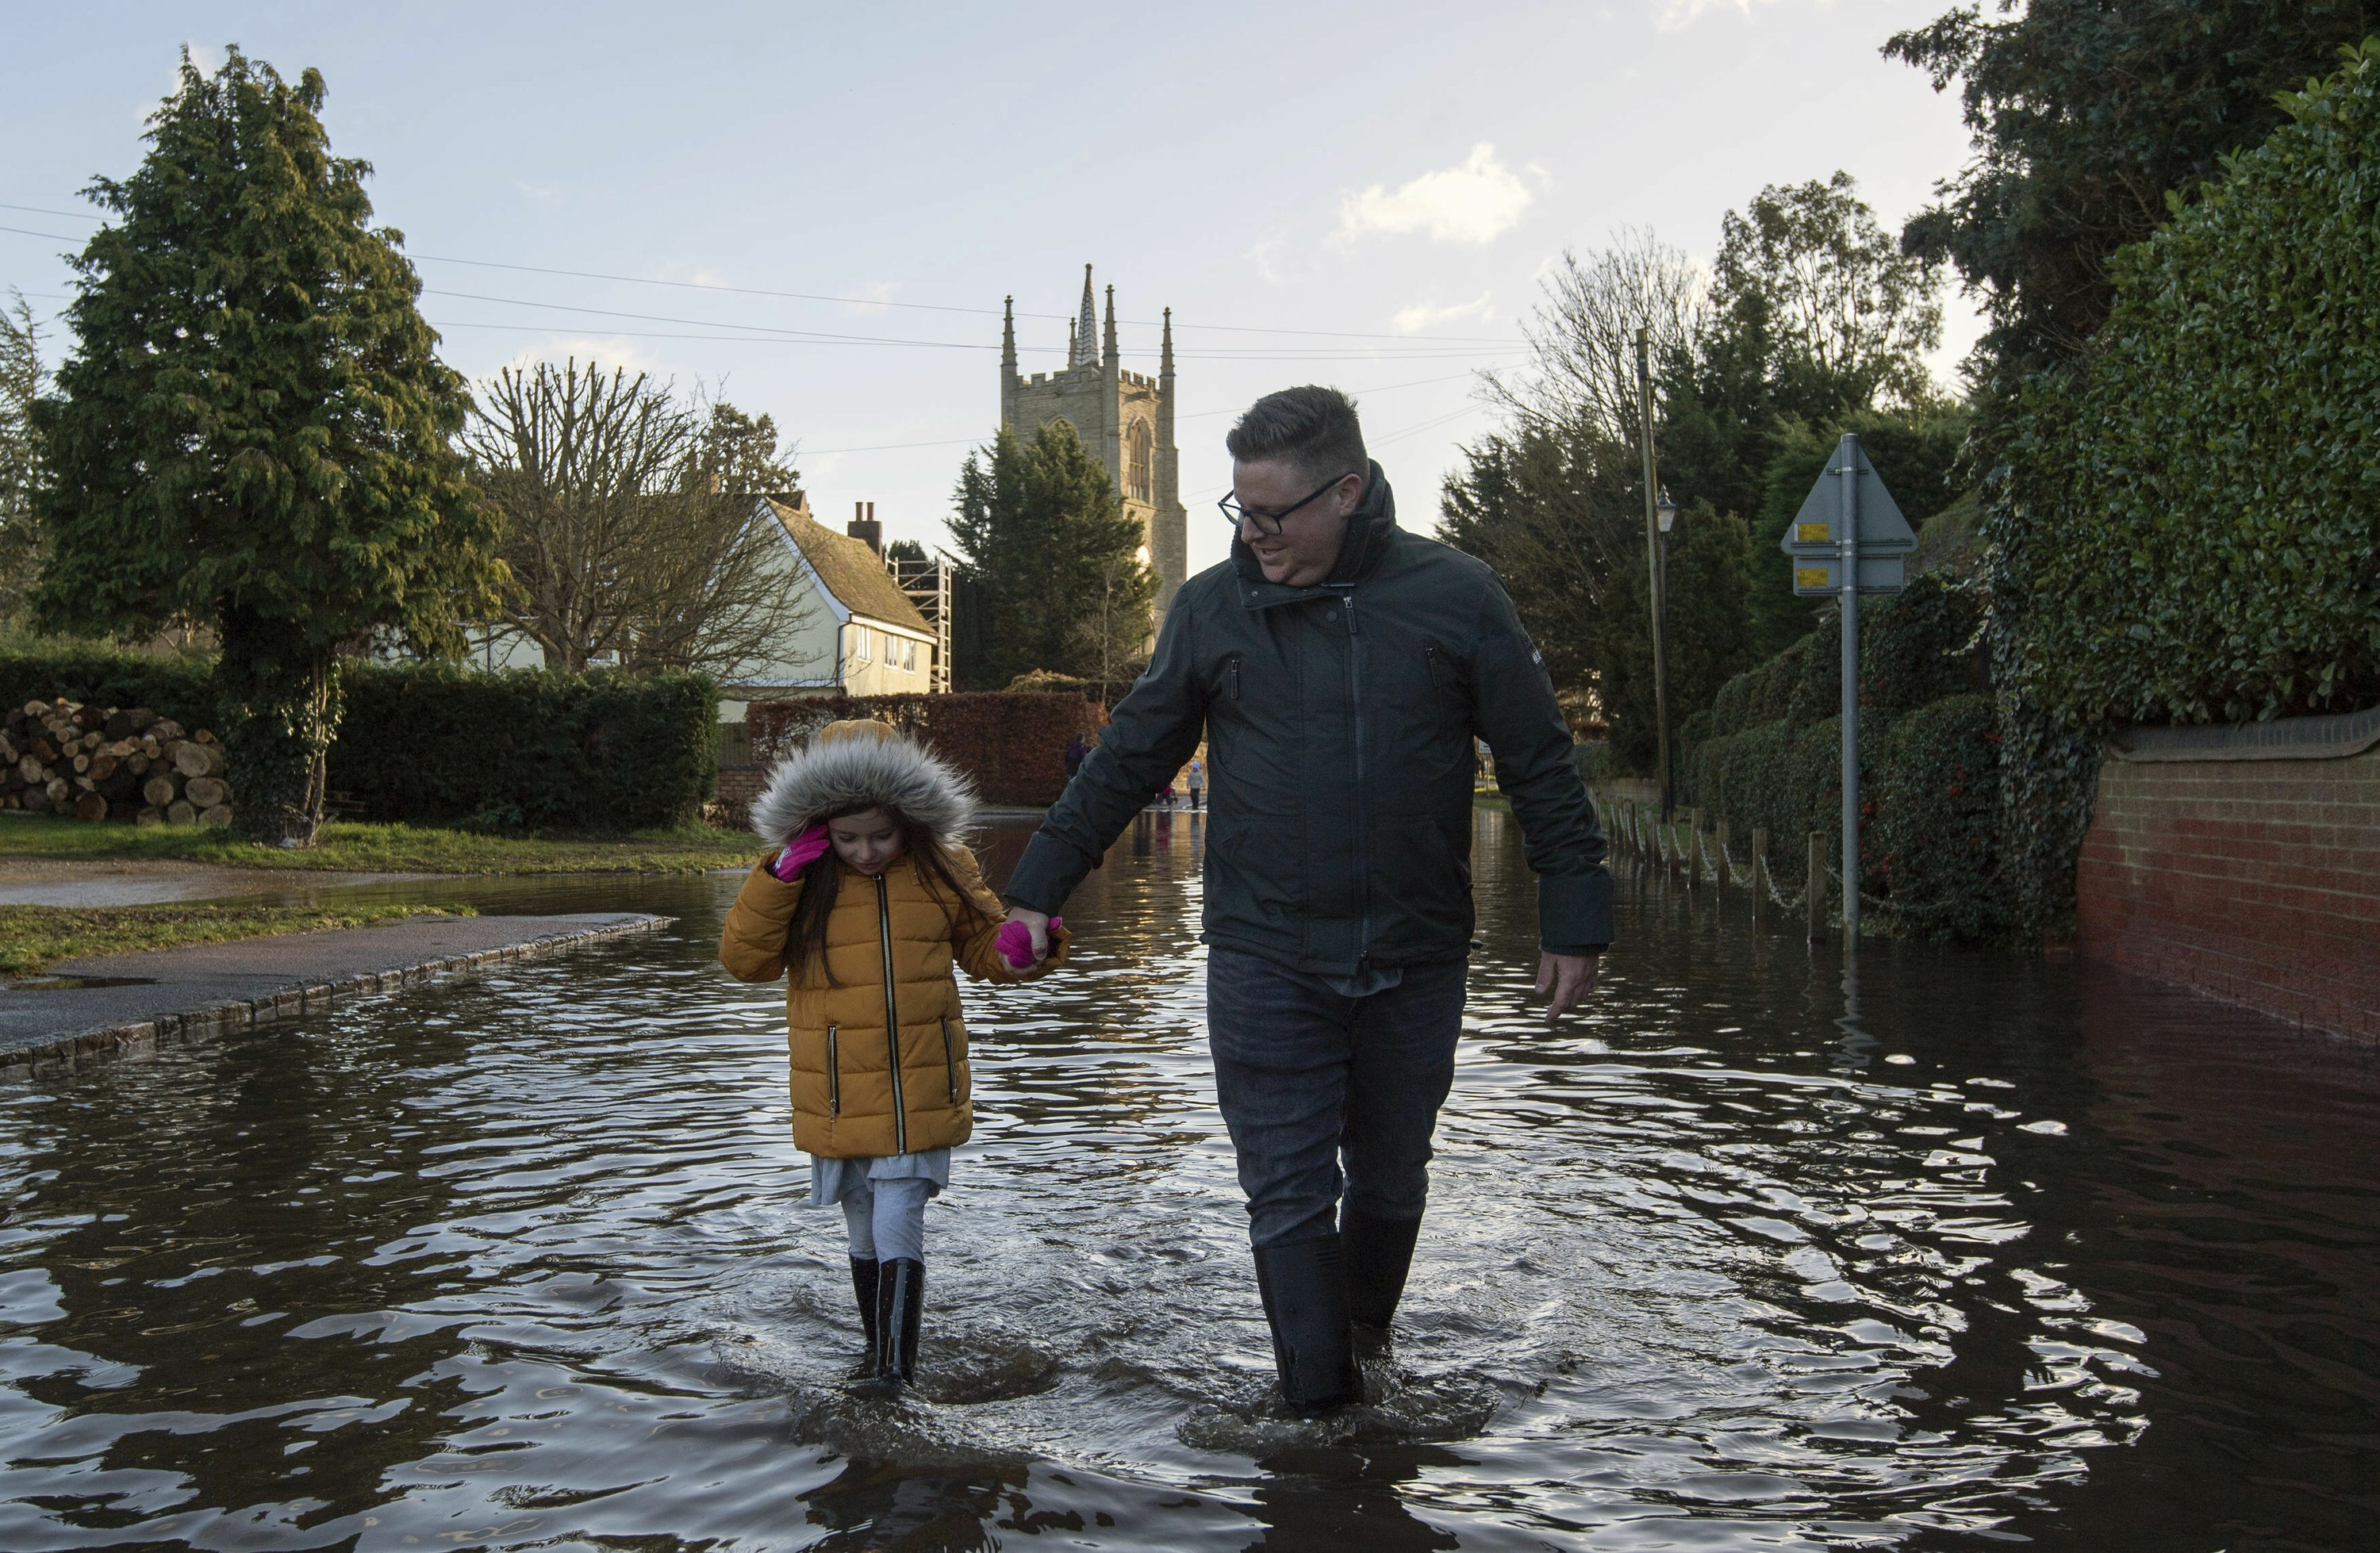 A hurricane force winds up to 106 mph hitting parts of Britain